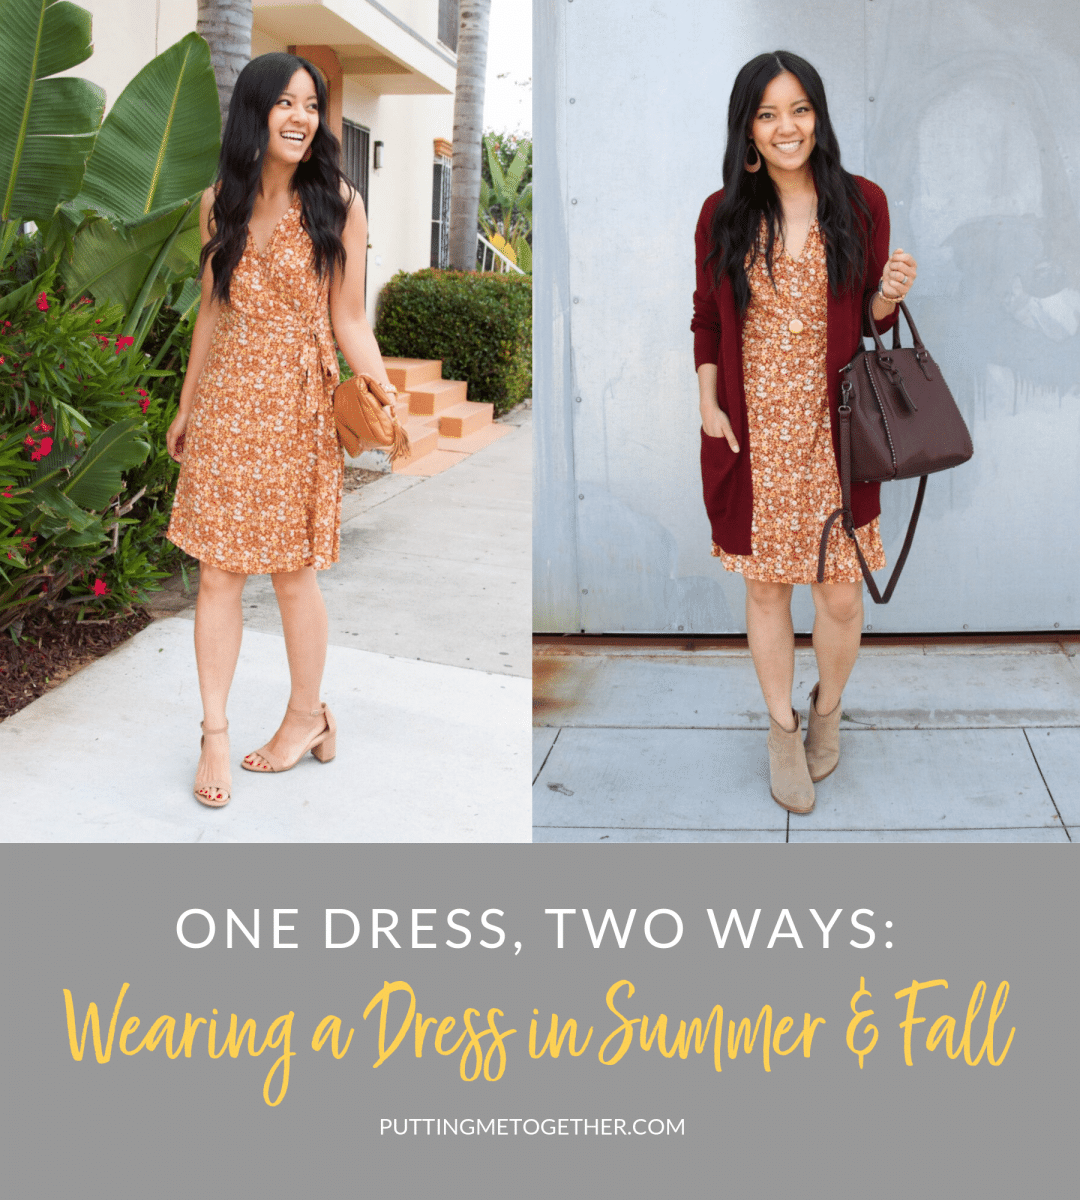 One Dress Two Ways: How to Style a Dress in Summer and Fall